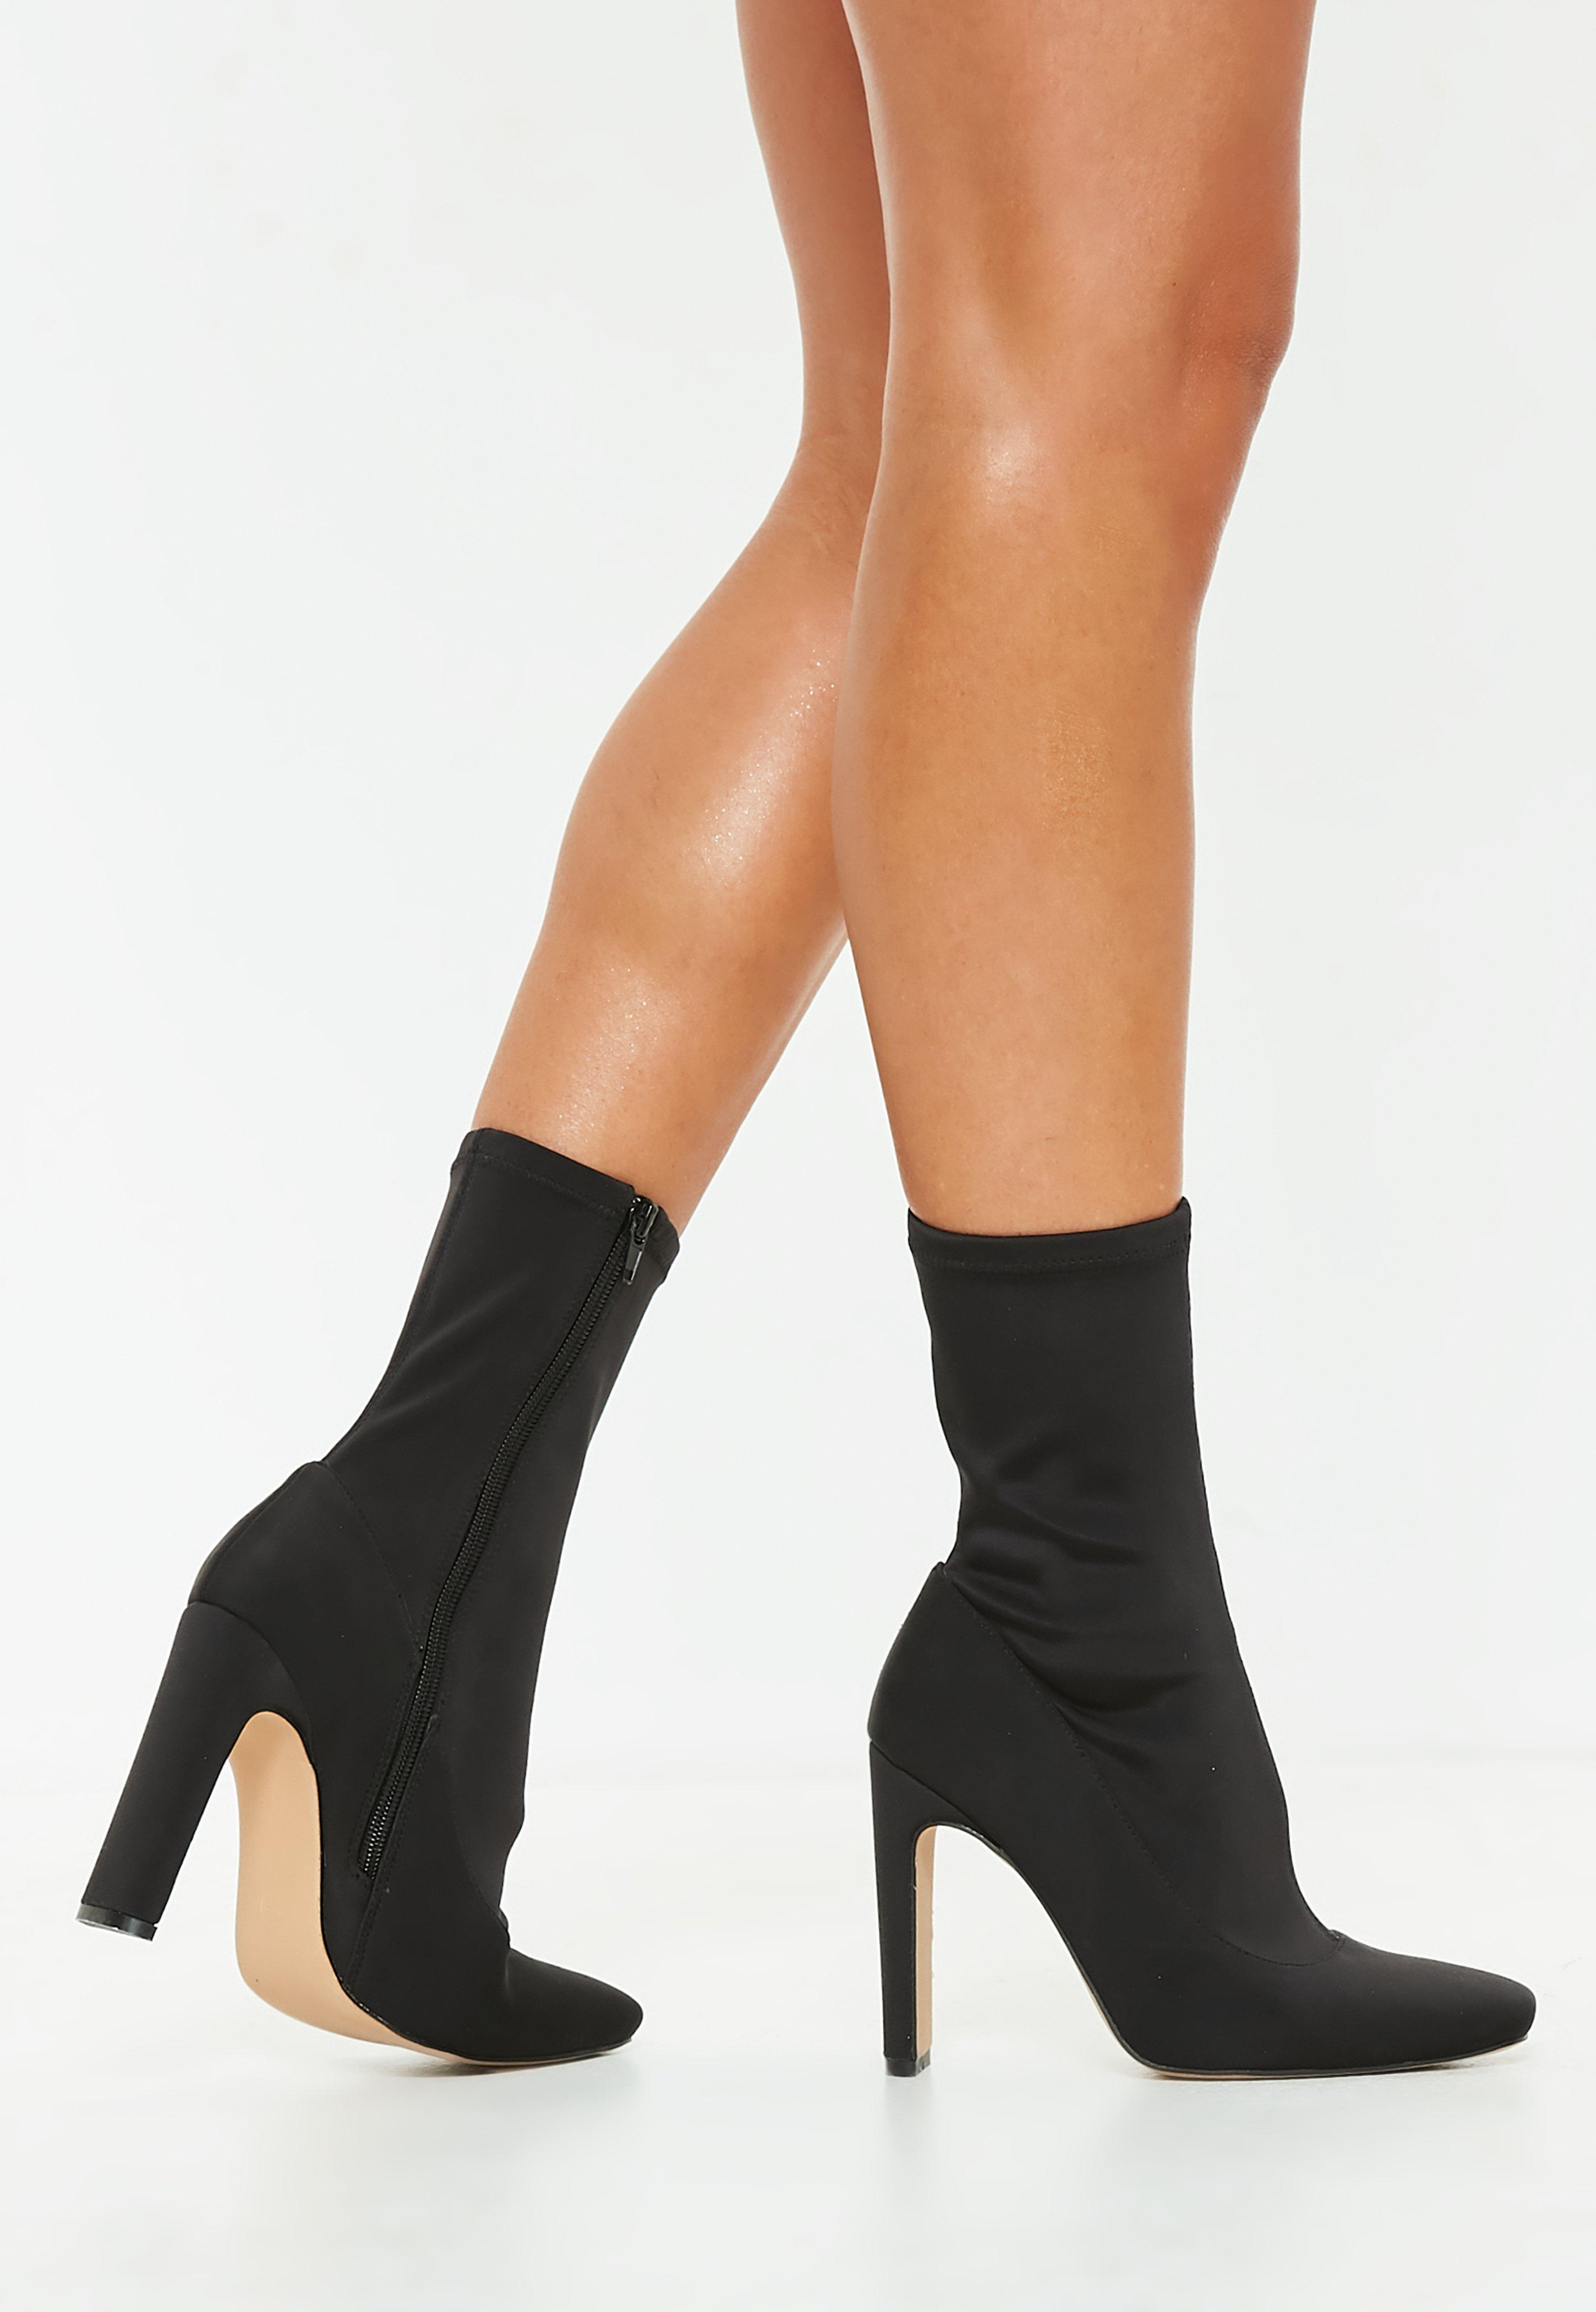 5f8300e021644 Women's Boots | Ankle Boots | Black Boots | Missguided